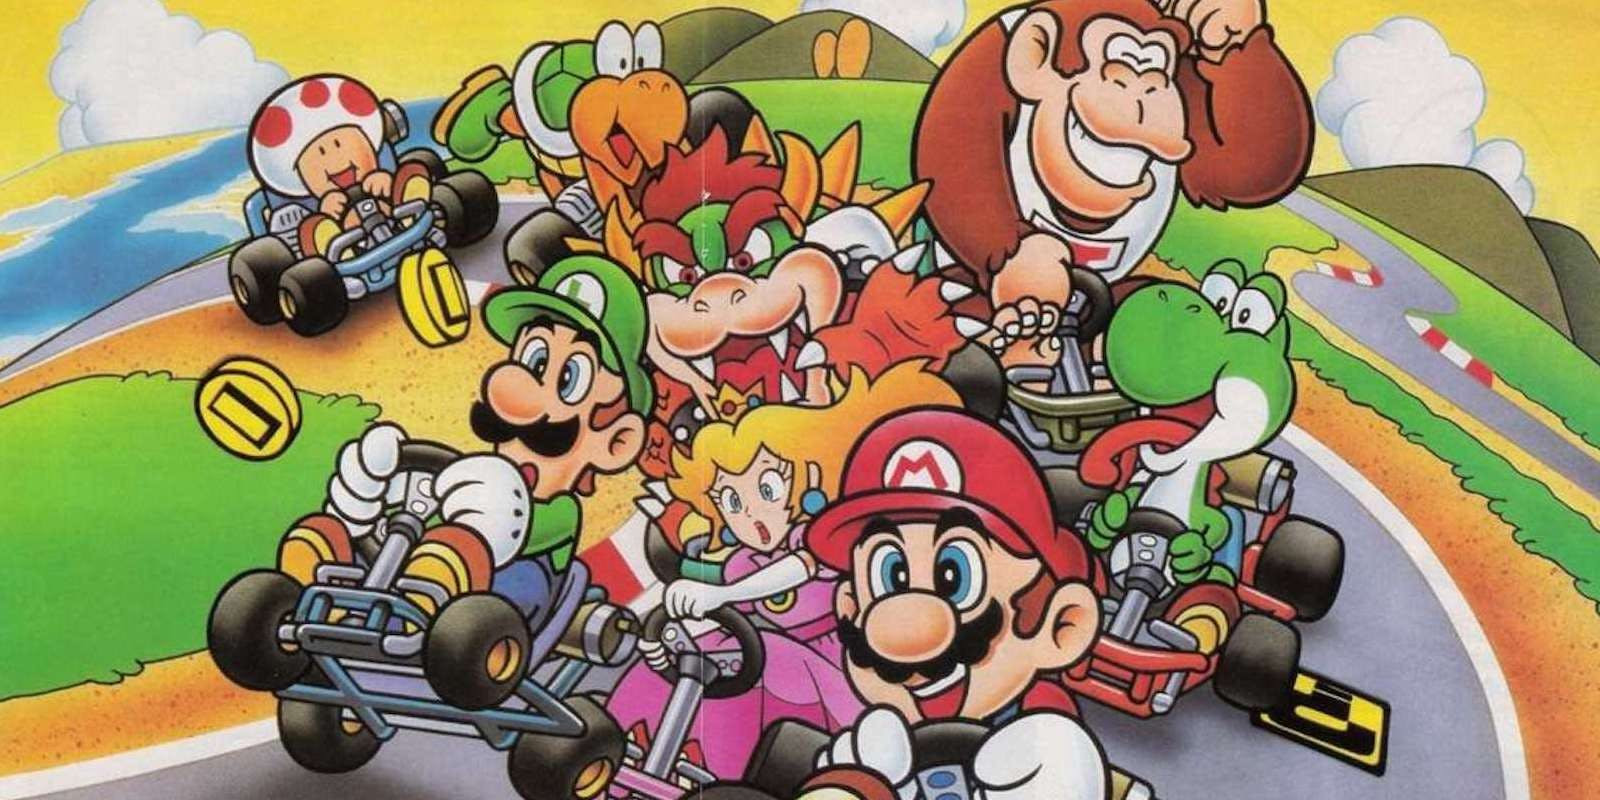 Super-Mario-Kart-Full-Cast-Artwork.jpeg